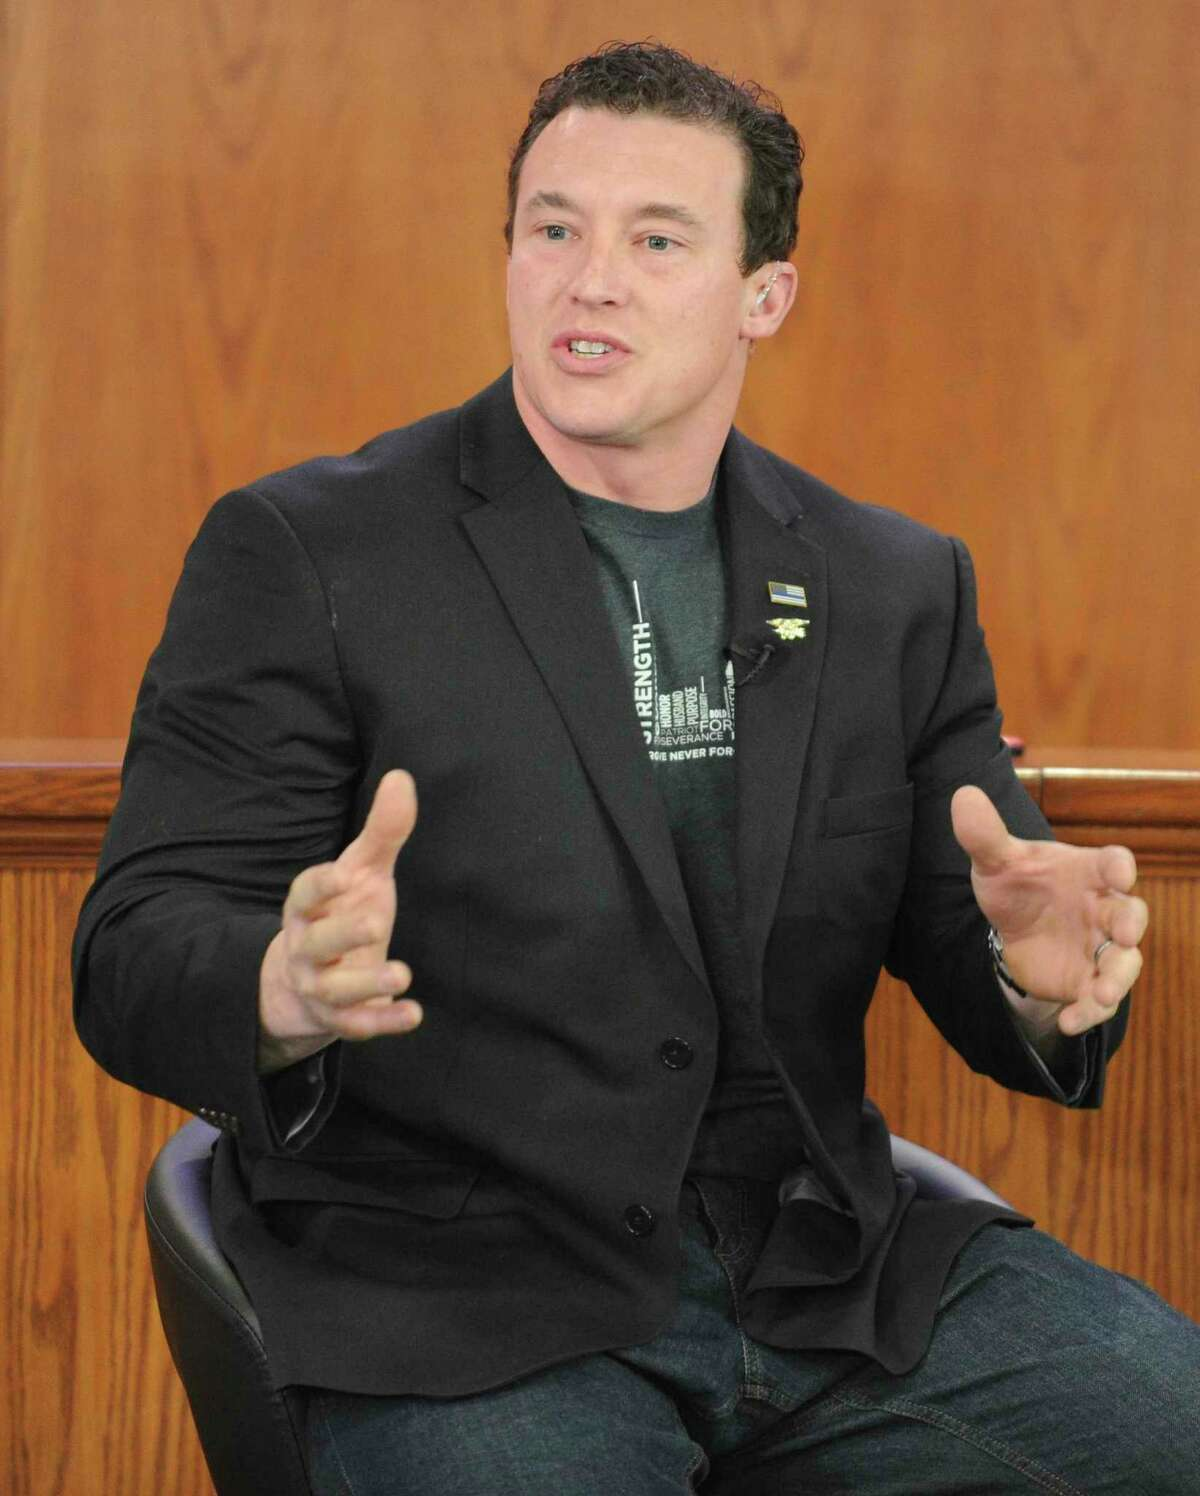 Greenwich resident Carl Higbie, a former Navy SEAL and employee of the Trump administration, was elected Tuesday night to the RTM despite controversy over previous comments he had made on an Internet radio show.